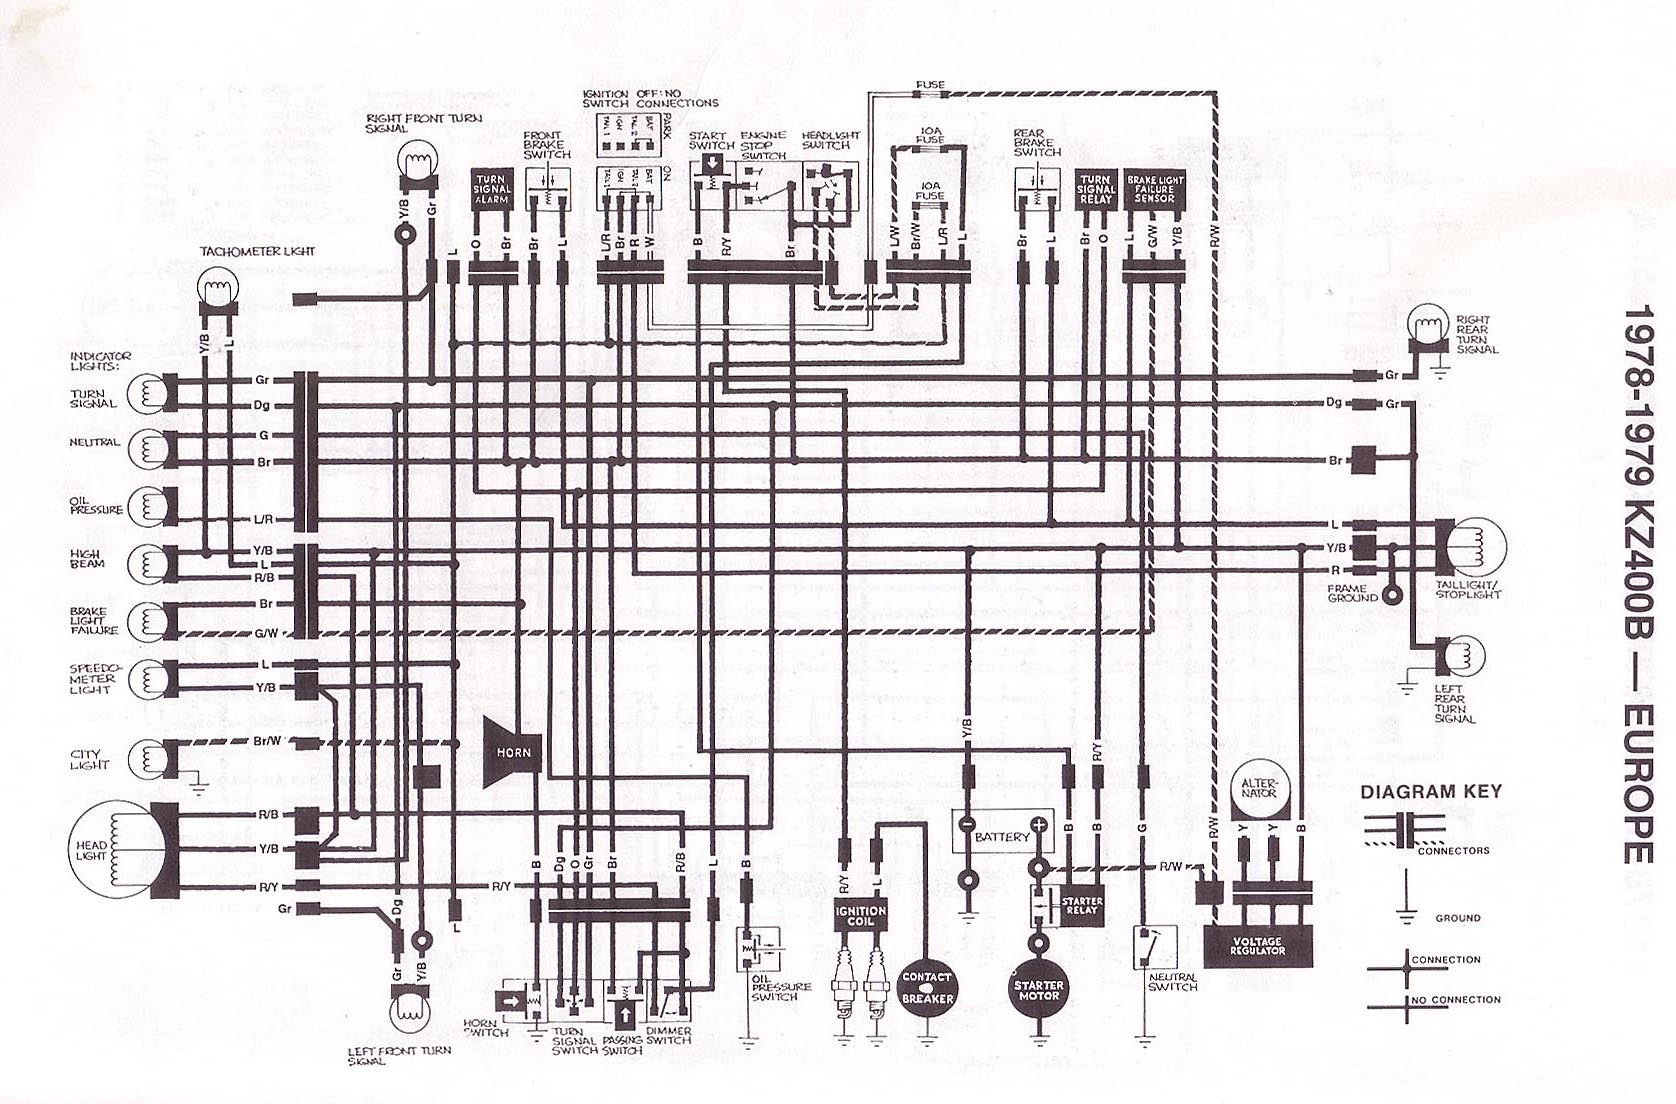 Kawasaki Kz400 B2 Wiring Diagram Page 2 And 1977 Index Of Techh Tips Bilder Diagrams Rh Com Kz200 1979 Ford F 250